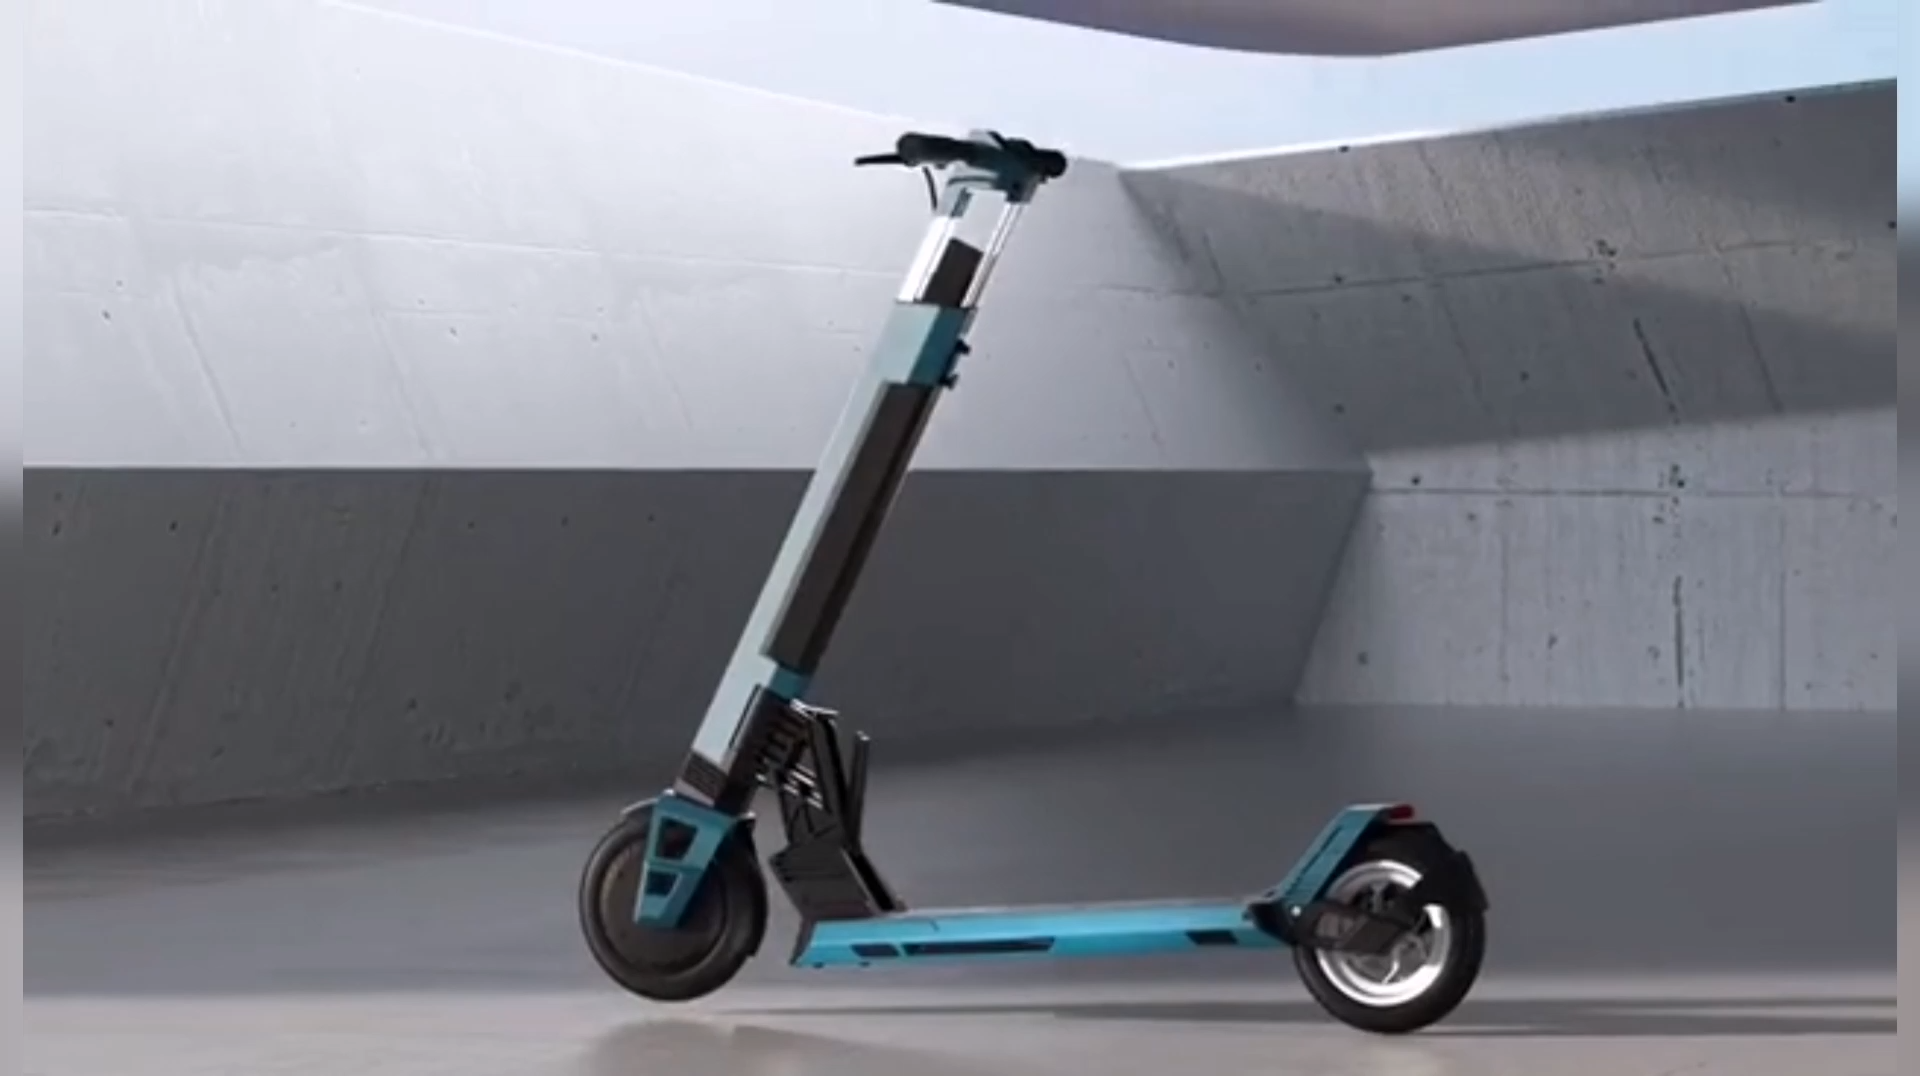 Free Shipping USA Warehouse 2021 Foldable Adult Electric Scooters For Sale